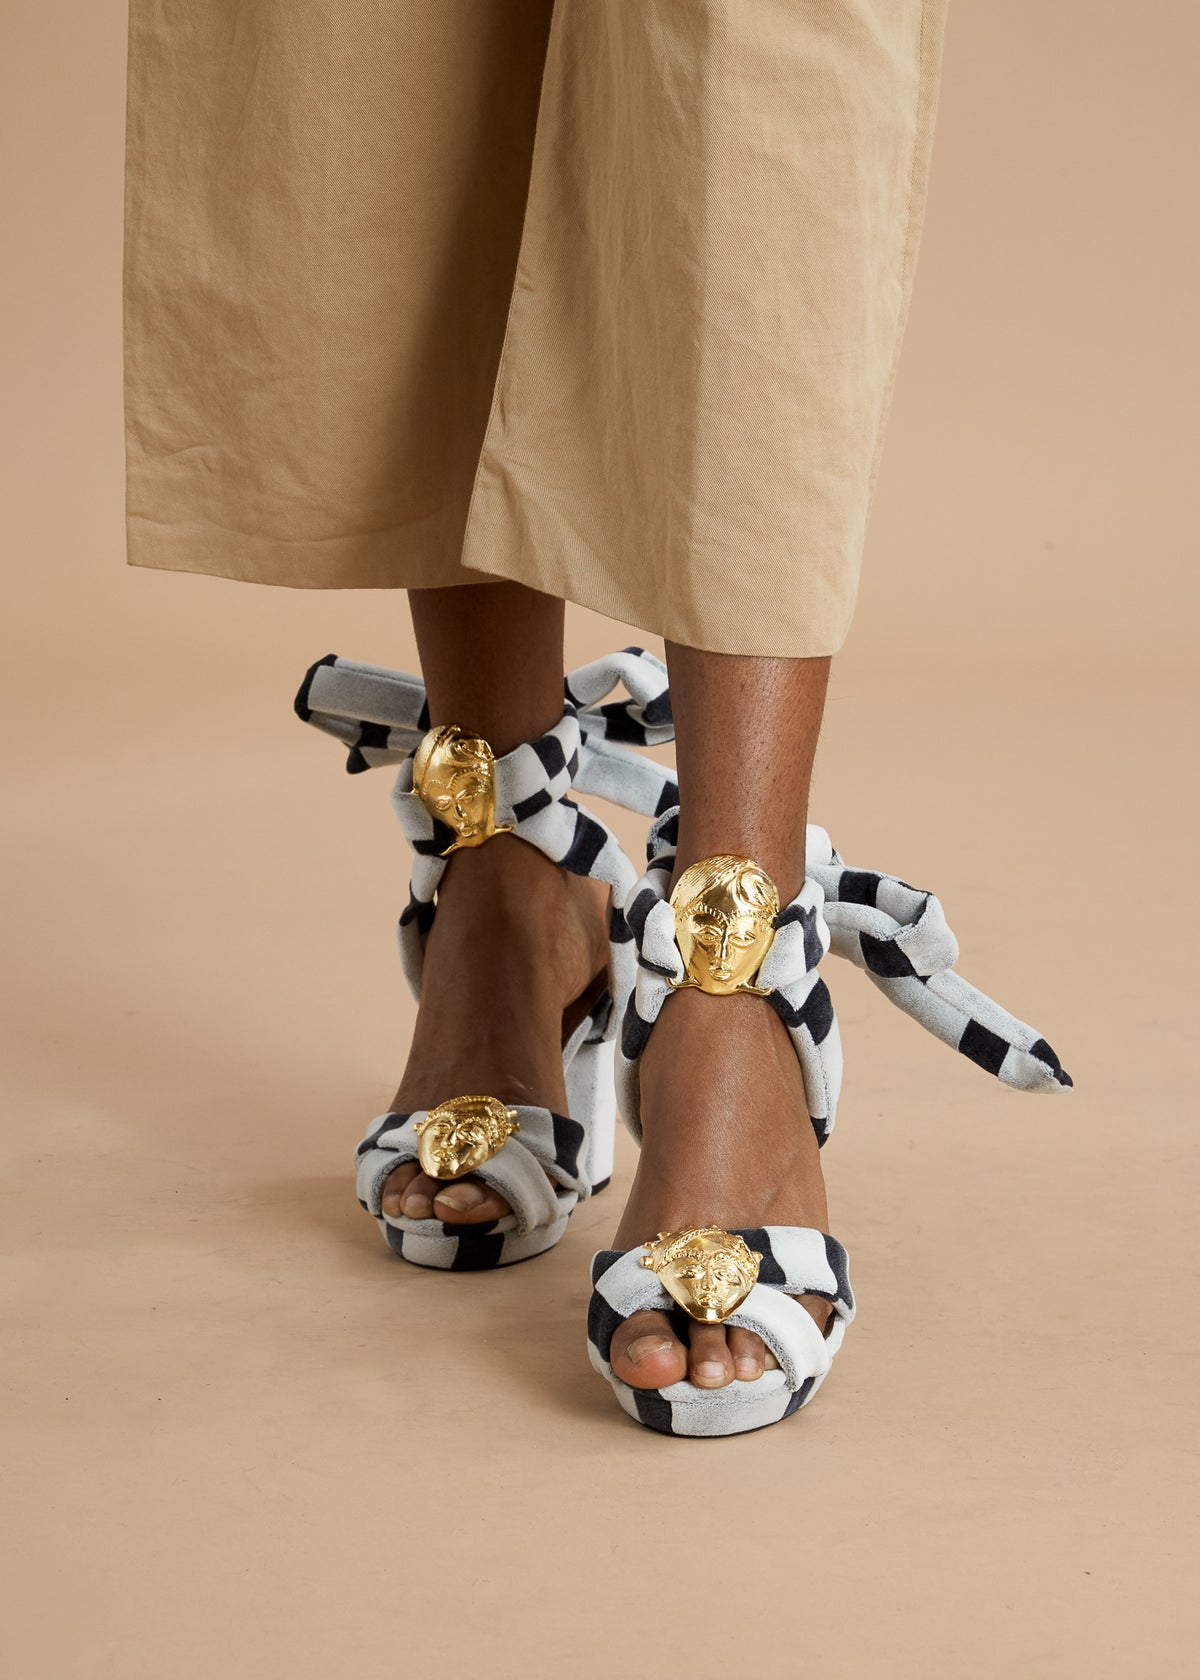 White and black striped high heel sandals with bronze masks